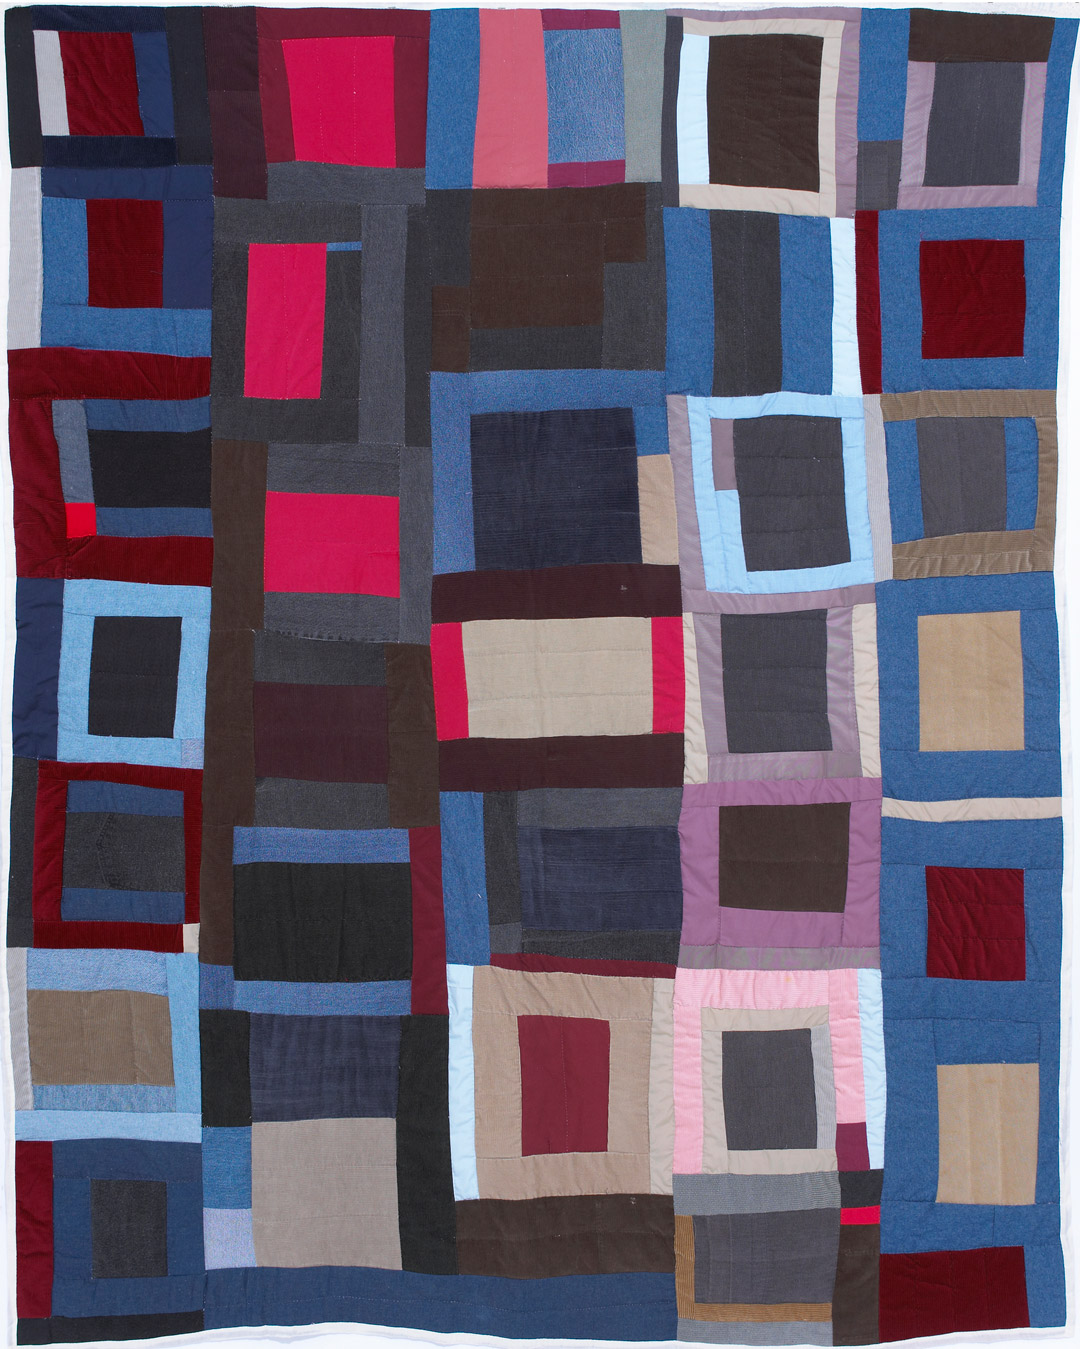 Image of a colorful quilt composed of blocks with repetition and rhythm